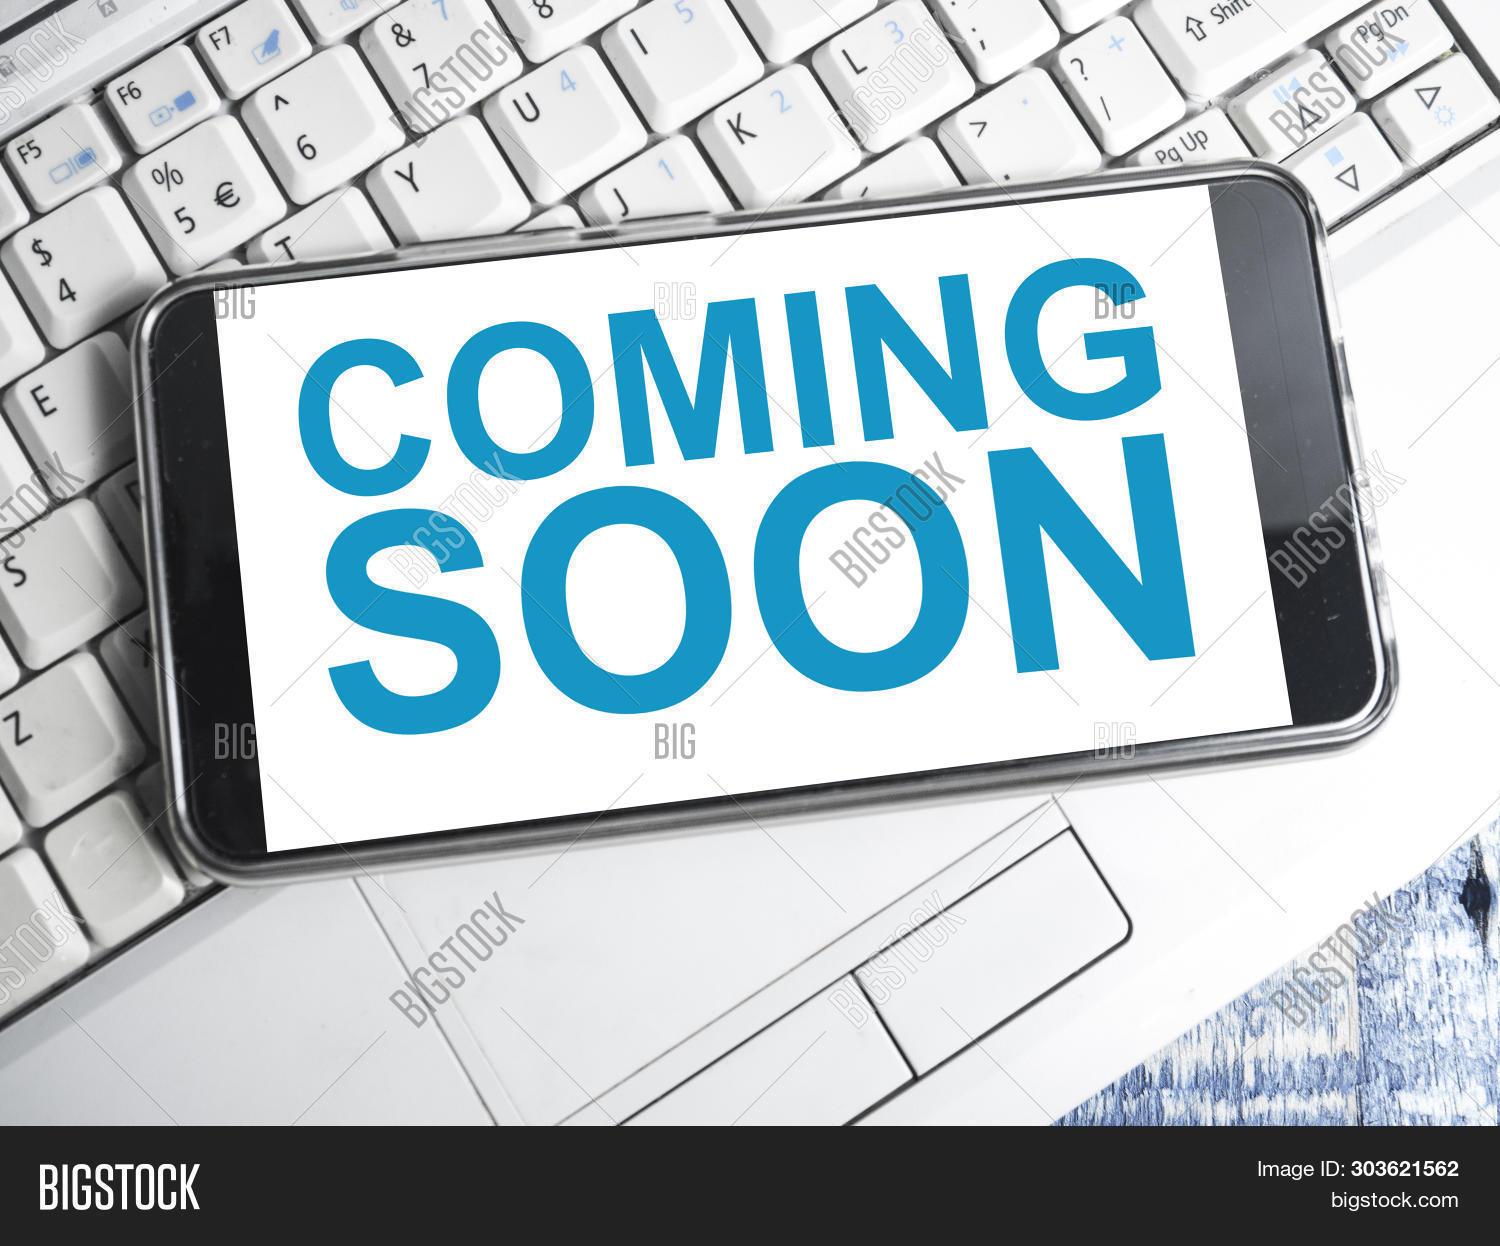 Coming Soon Words Image Photo Free Trial Bigstock